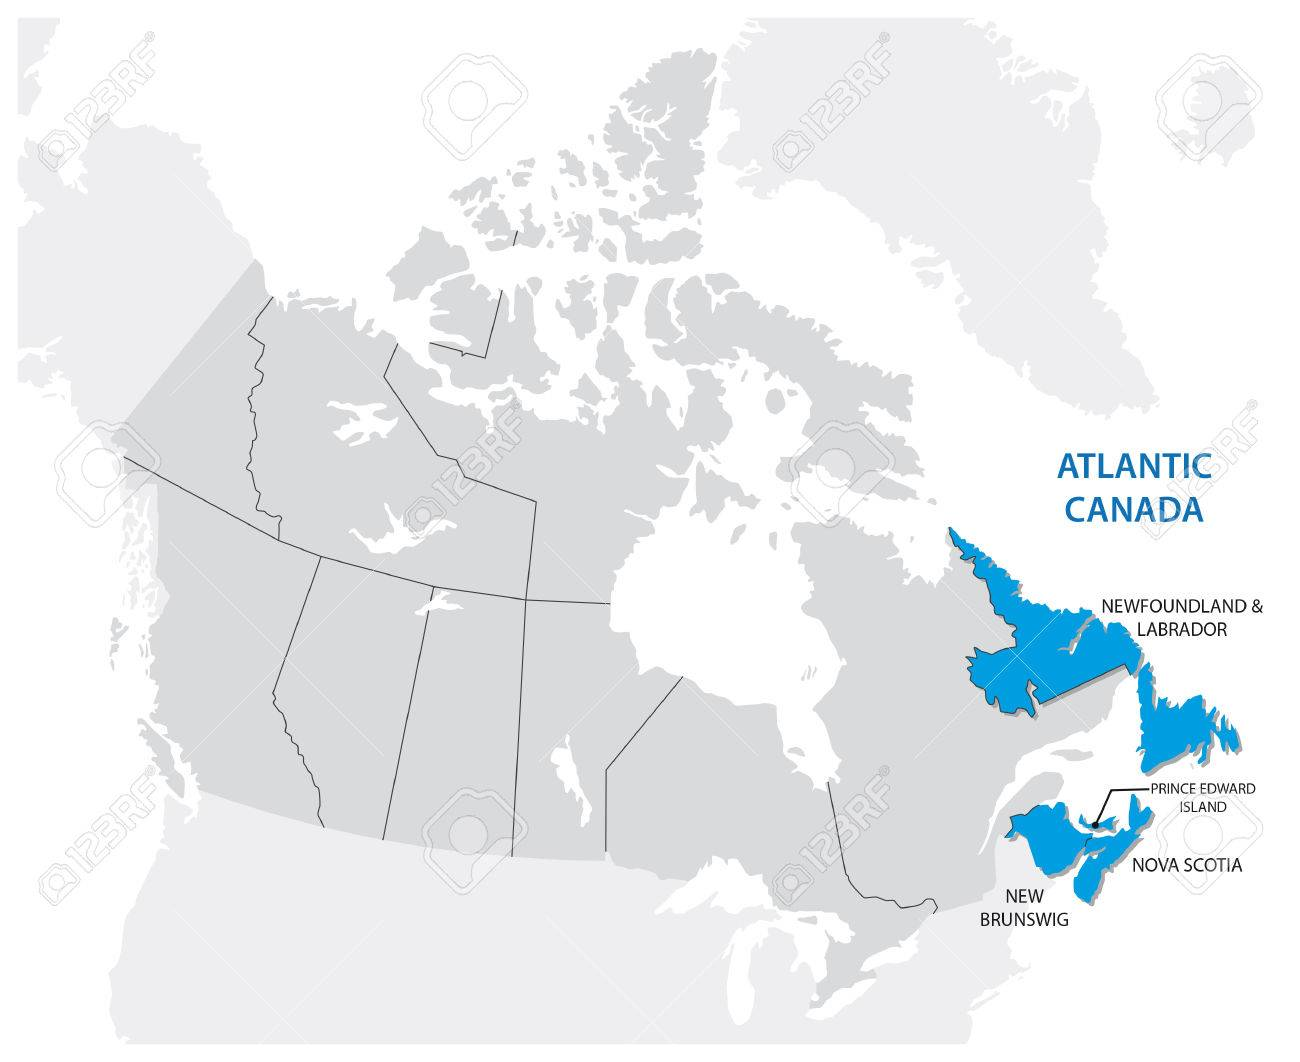 Survey Map Of The Four Canadian Atlantic States, Atlantic Canada